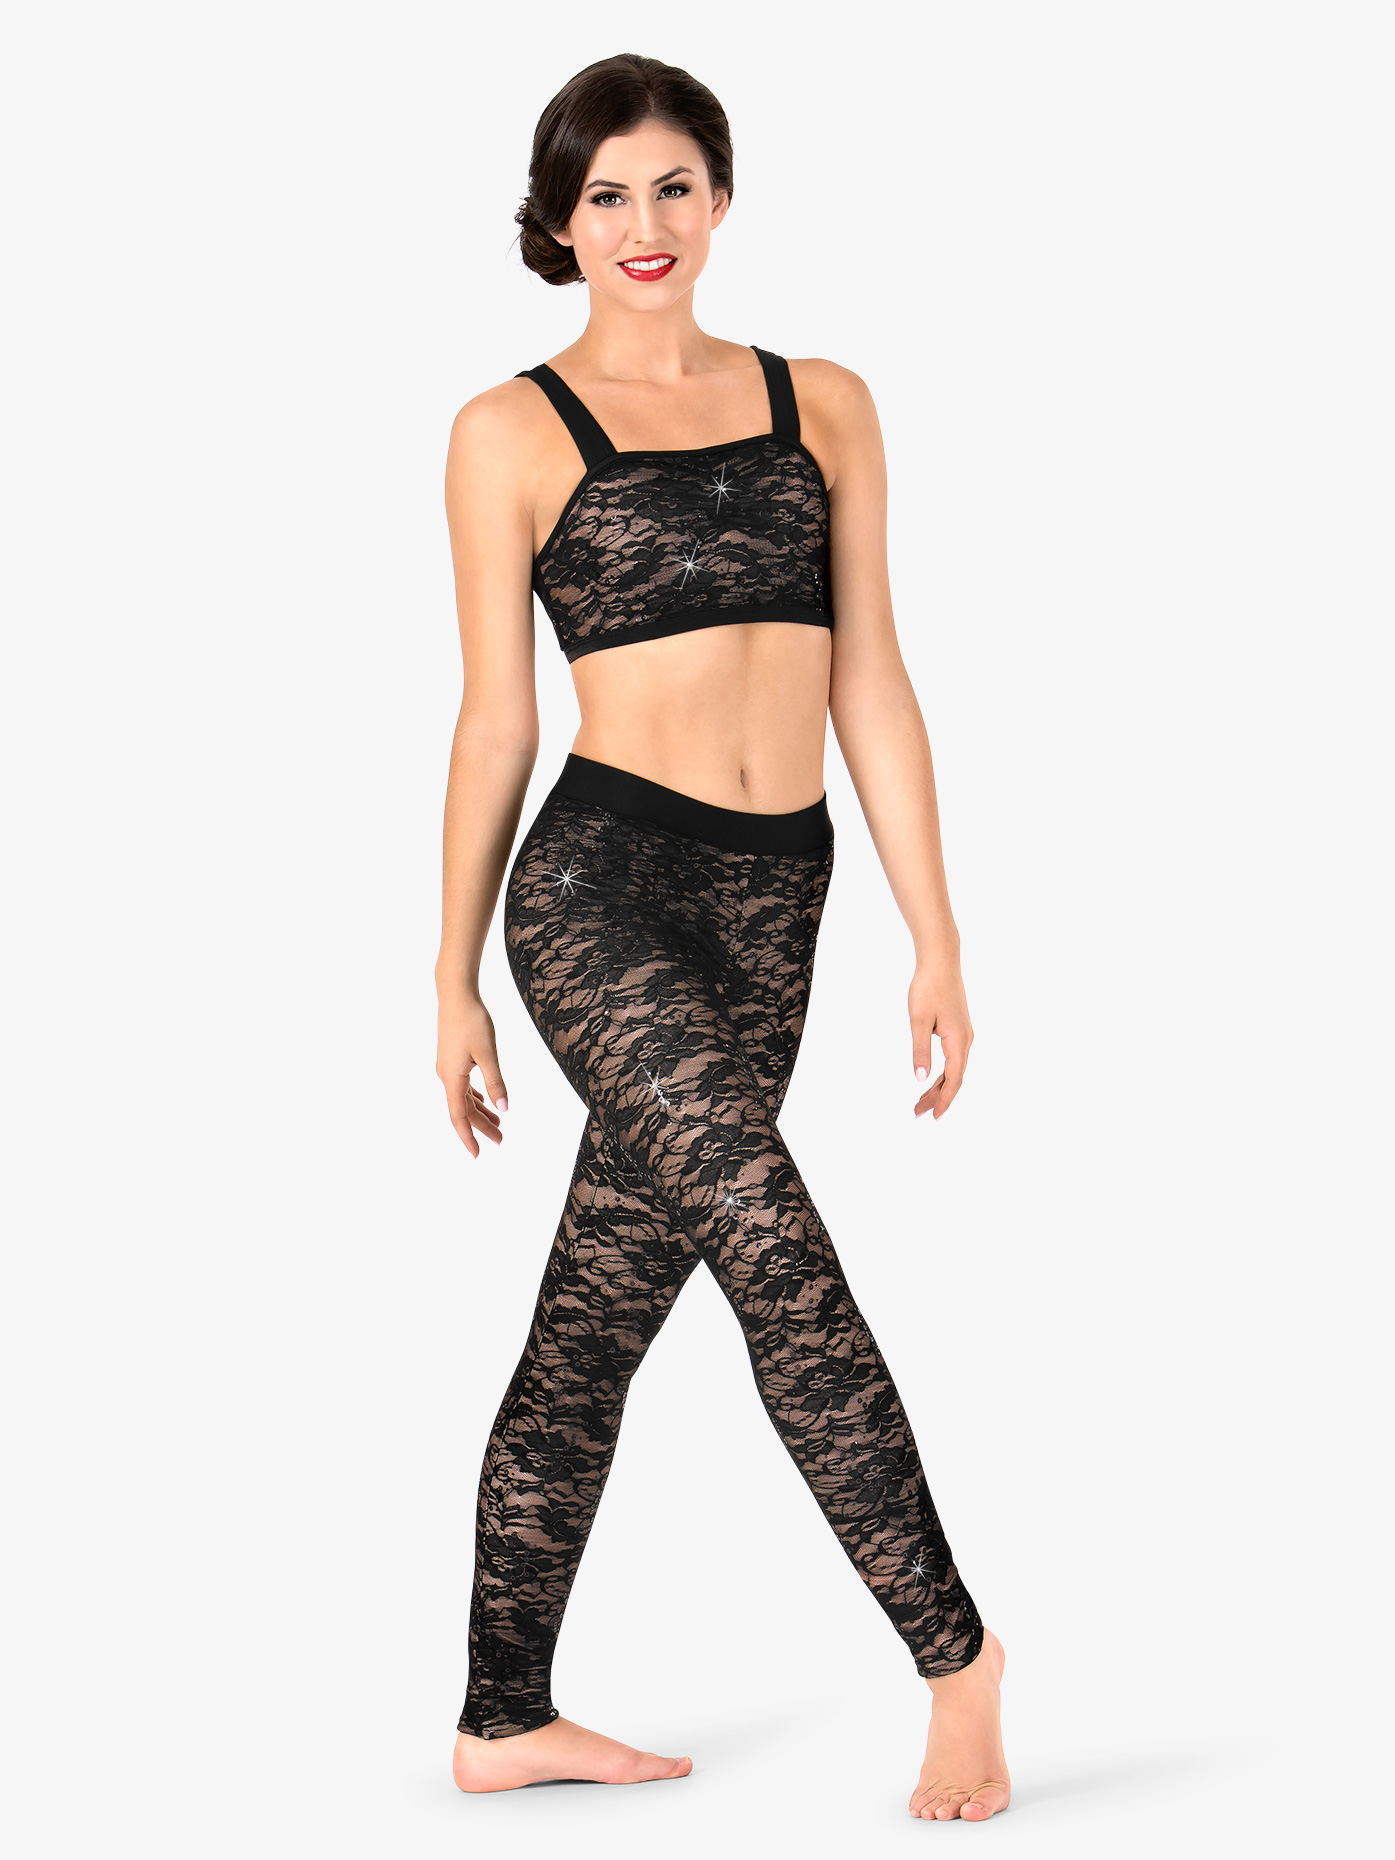 Elisse by Double Platinum Womens Floral Lace Dance Leggings N7498